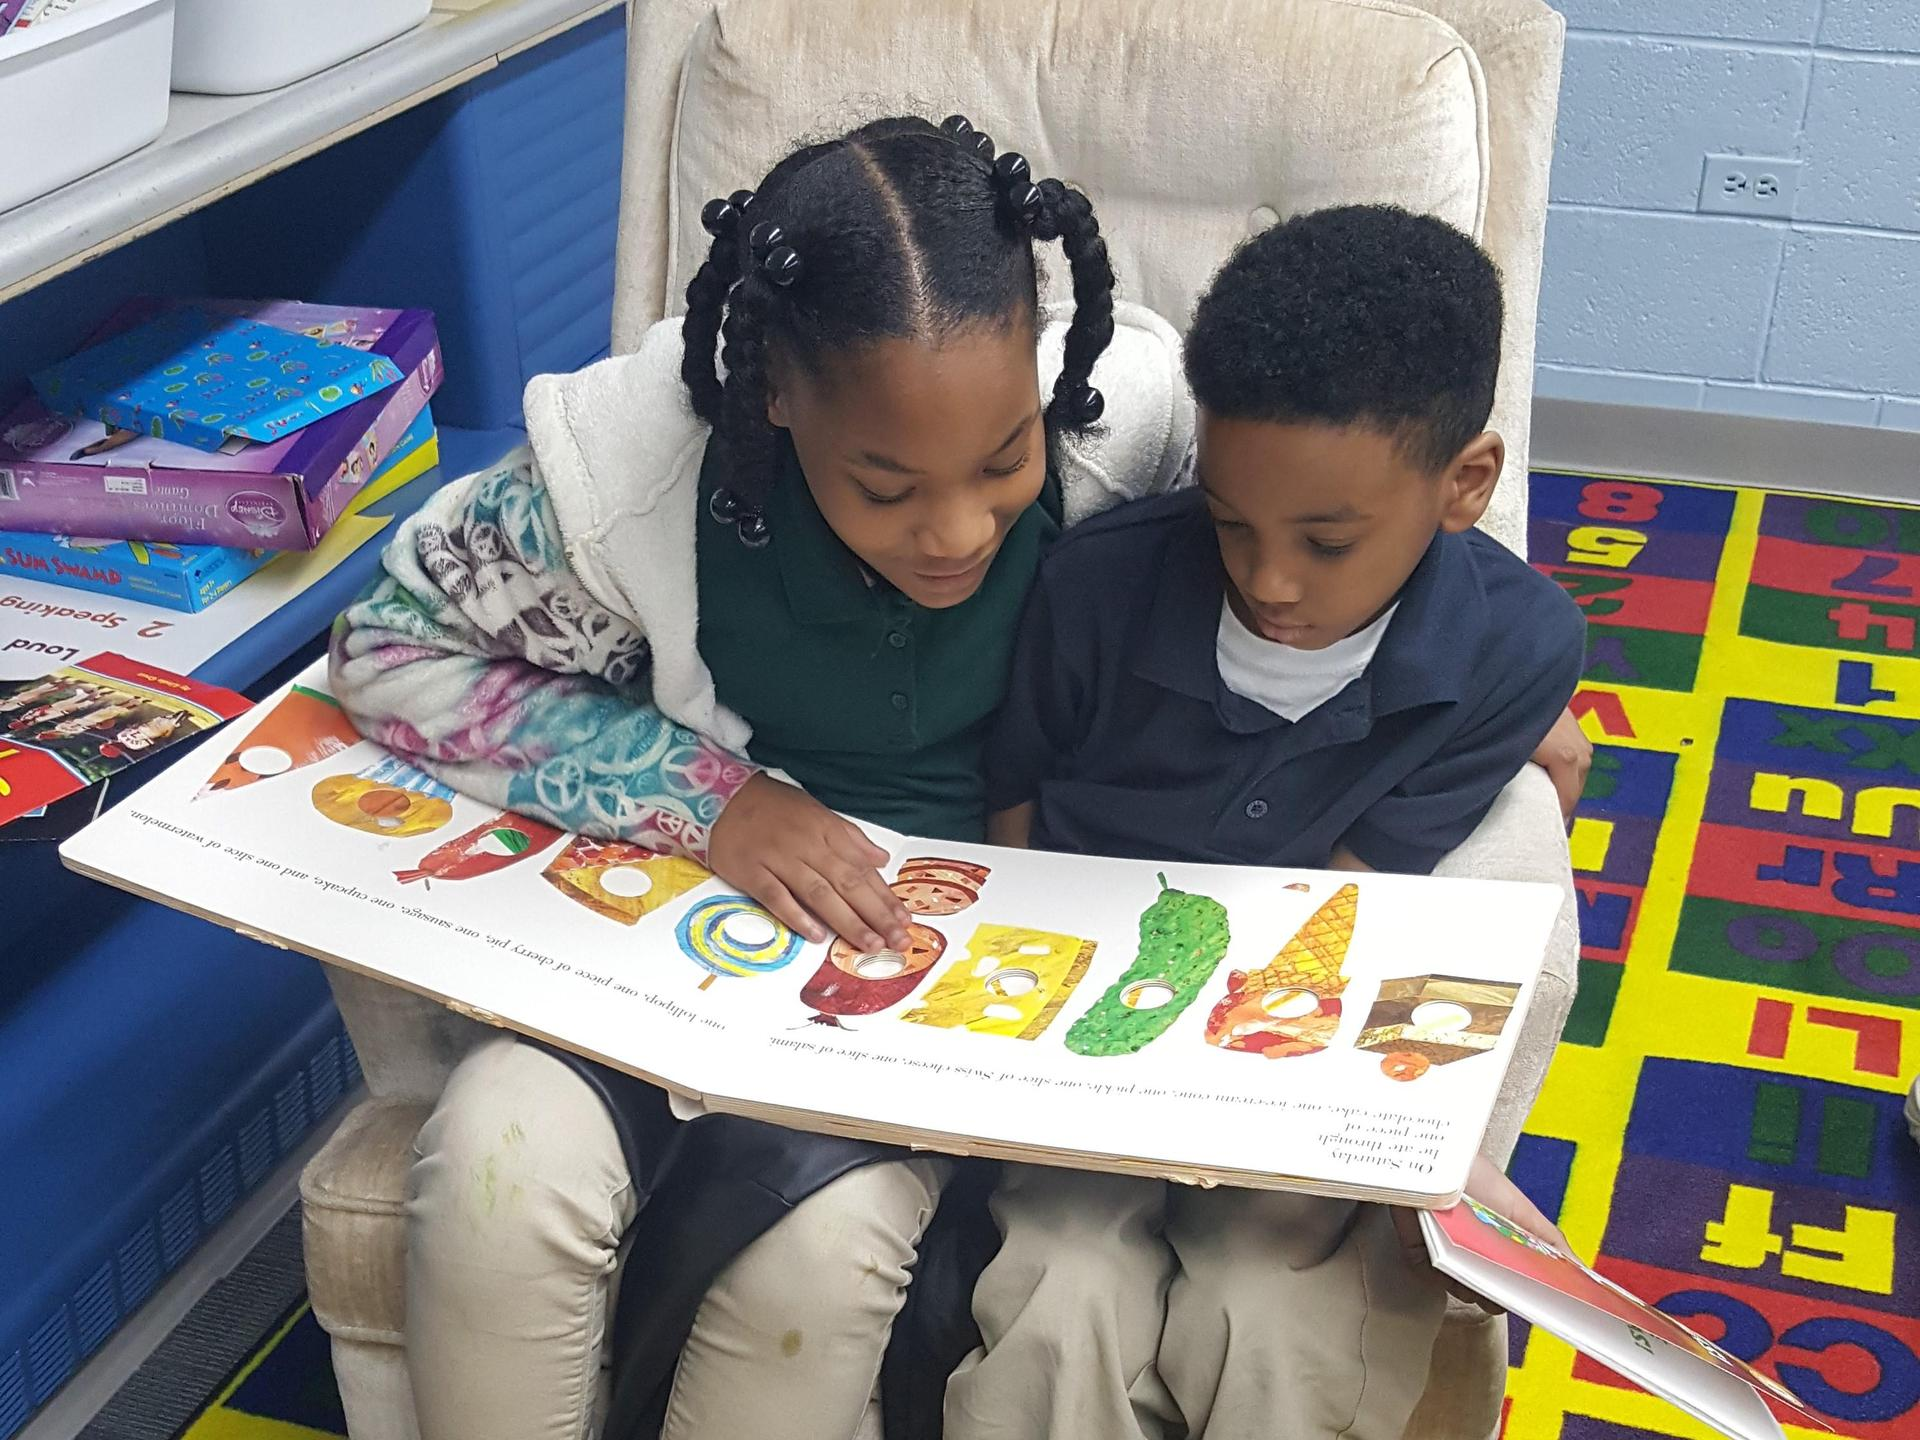 Student helps student with reading